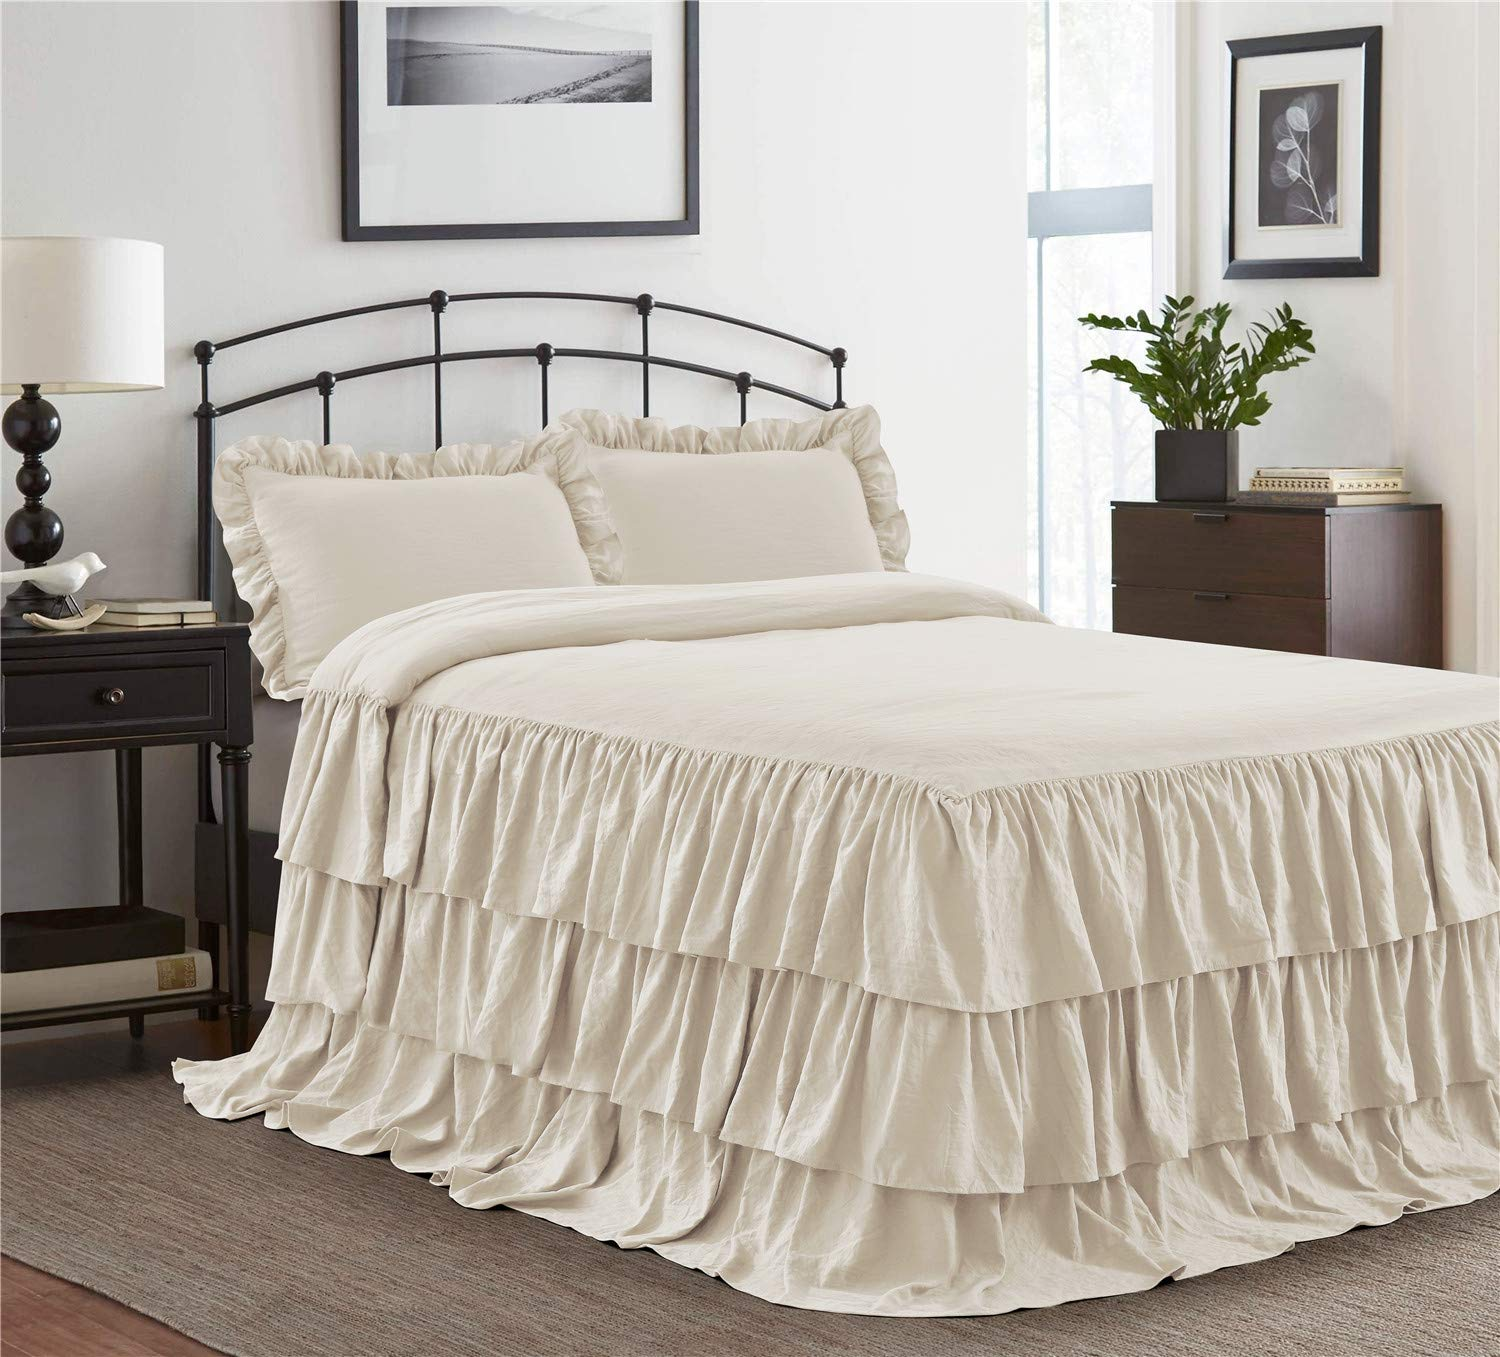 HIG 3 Piece Ruffle Skirt Bedspread Set Queen-Ivory Color 30 inches Drop Ruffled Style Bed Skirt Coverlets Bedspreads Dust Ruffles- Echo Bedding Collections Queen Size-1 Bedspread, 2 Standard Shams